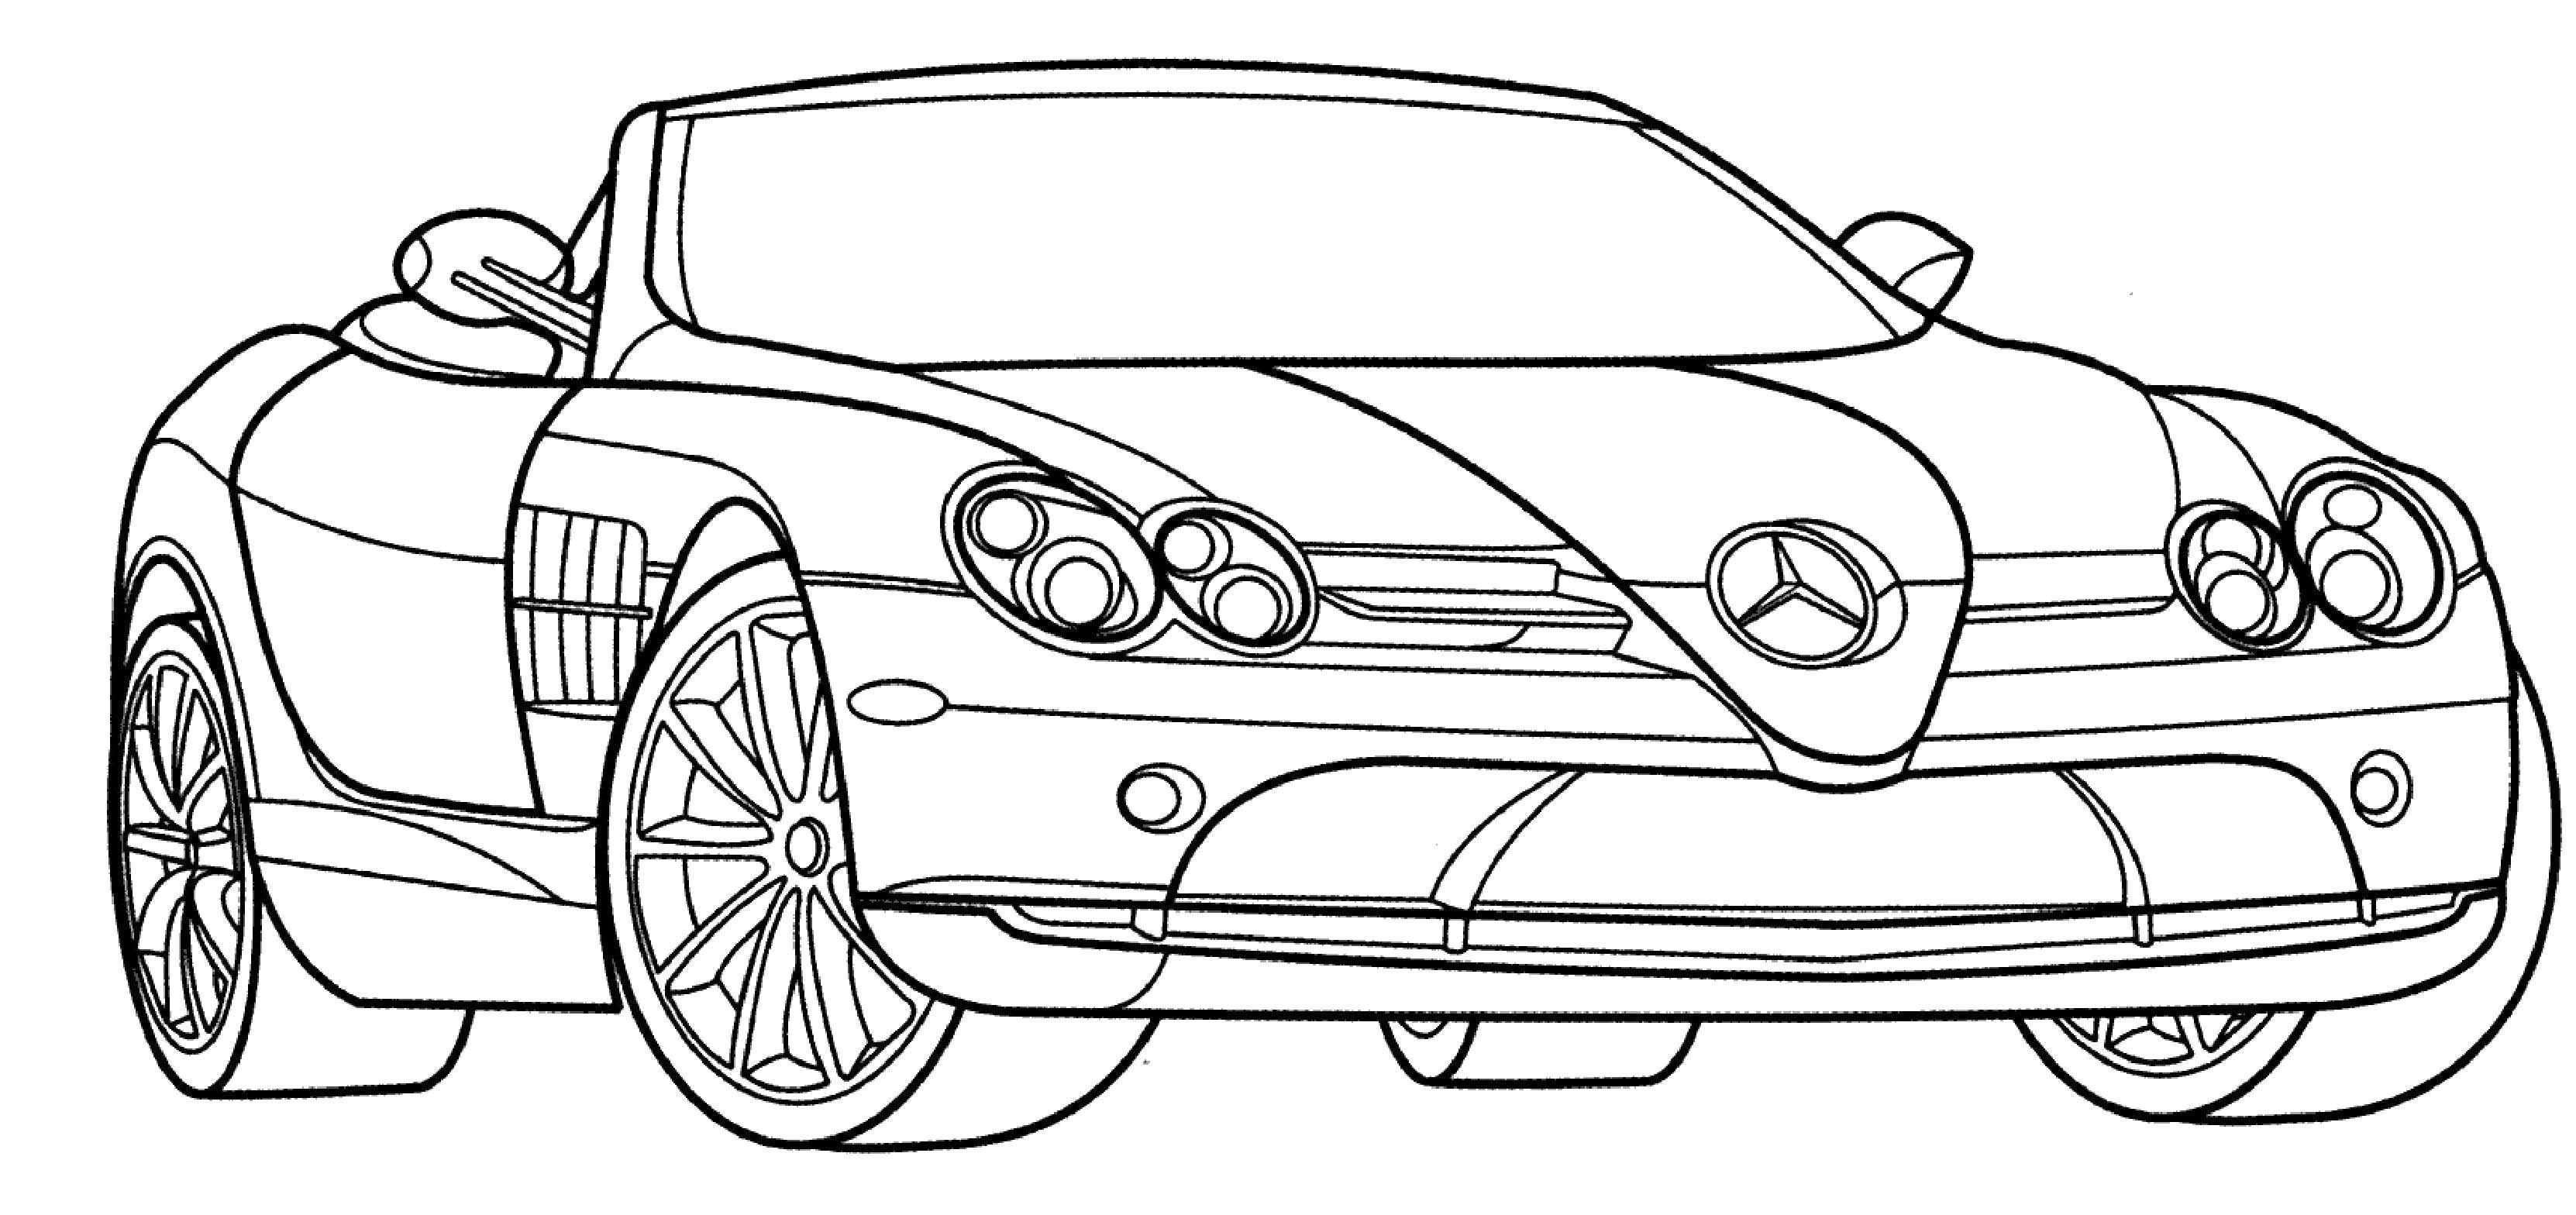 sports cars coloring pages bing images coloring pages for adults race car coloring pages. Black Bedroom Furniture Sets. Home Design Ideas